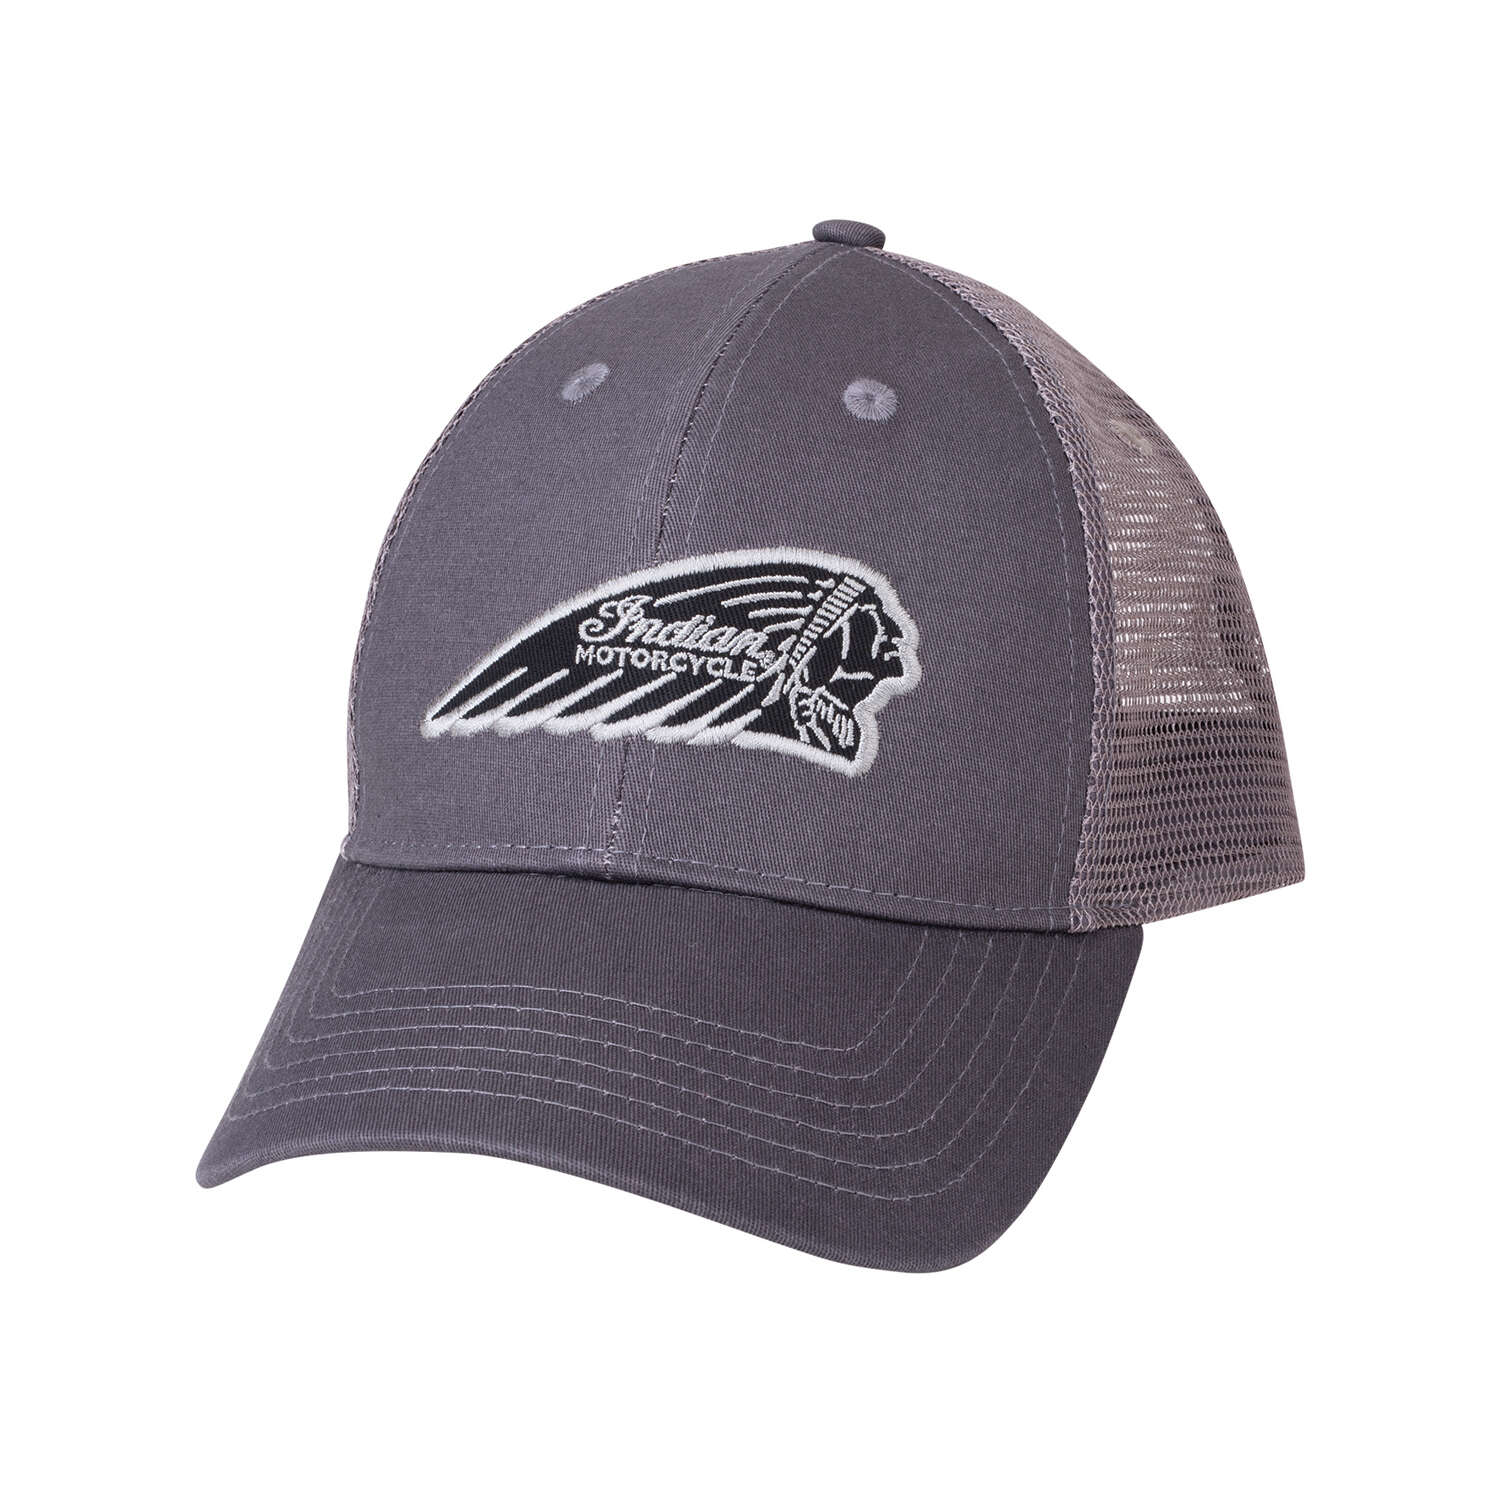 Trucker Hat with Embroidered Headdress Logo, Gray